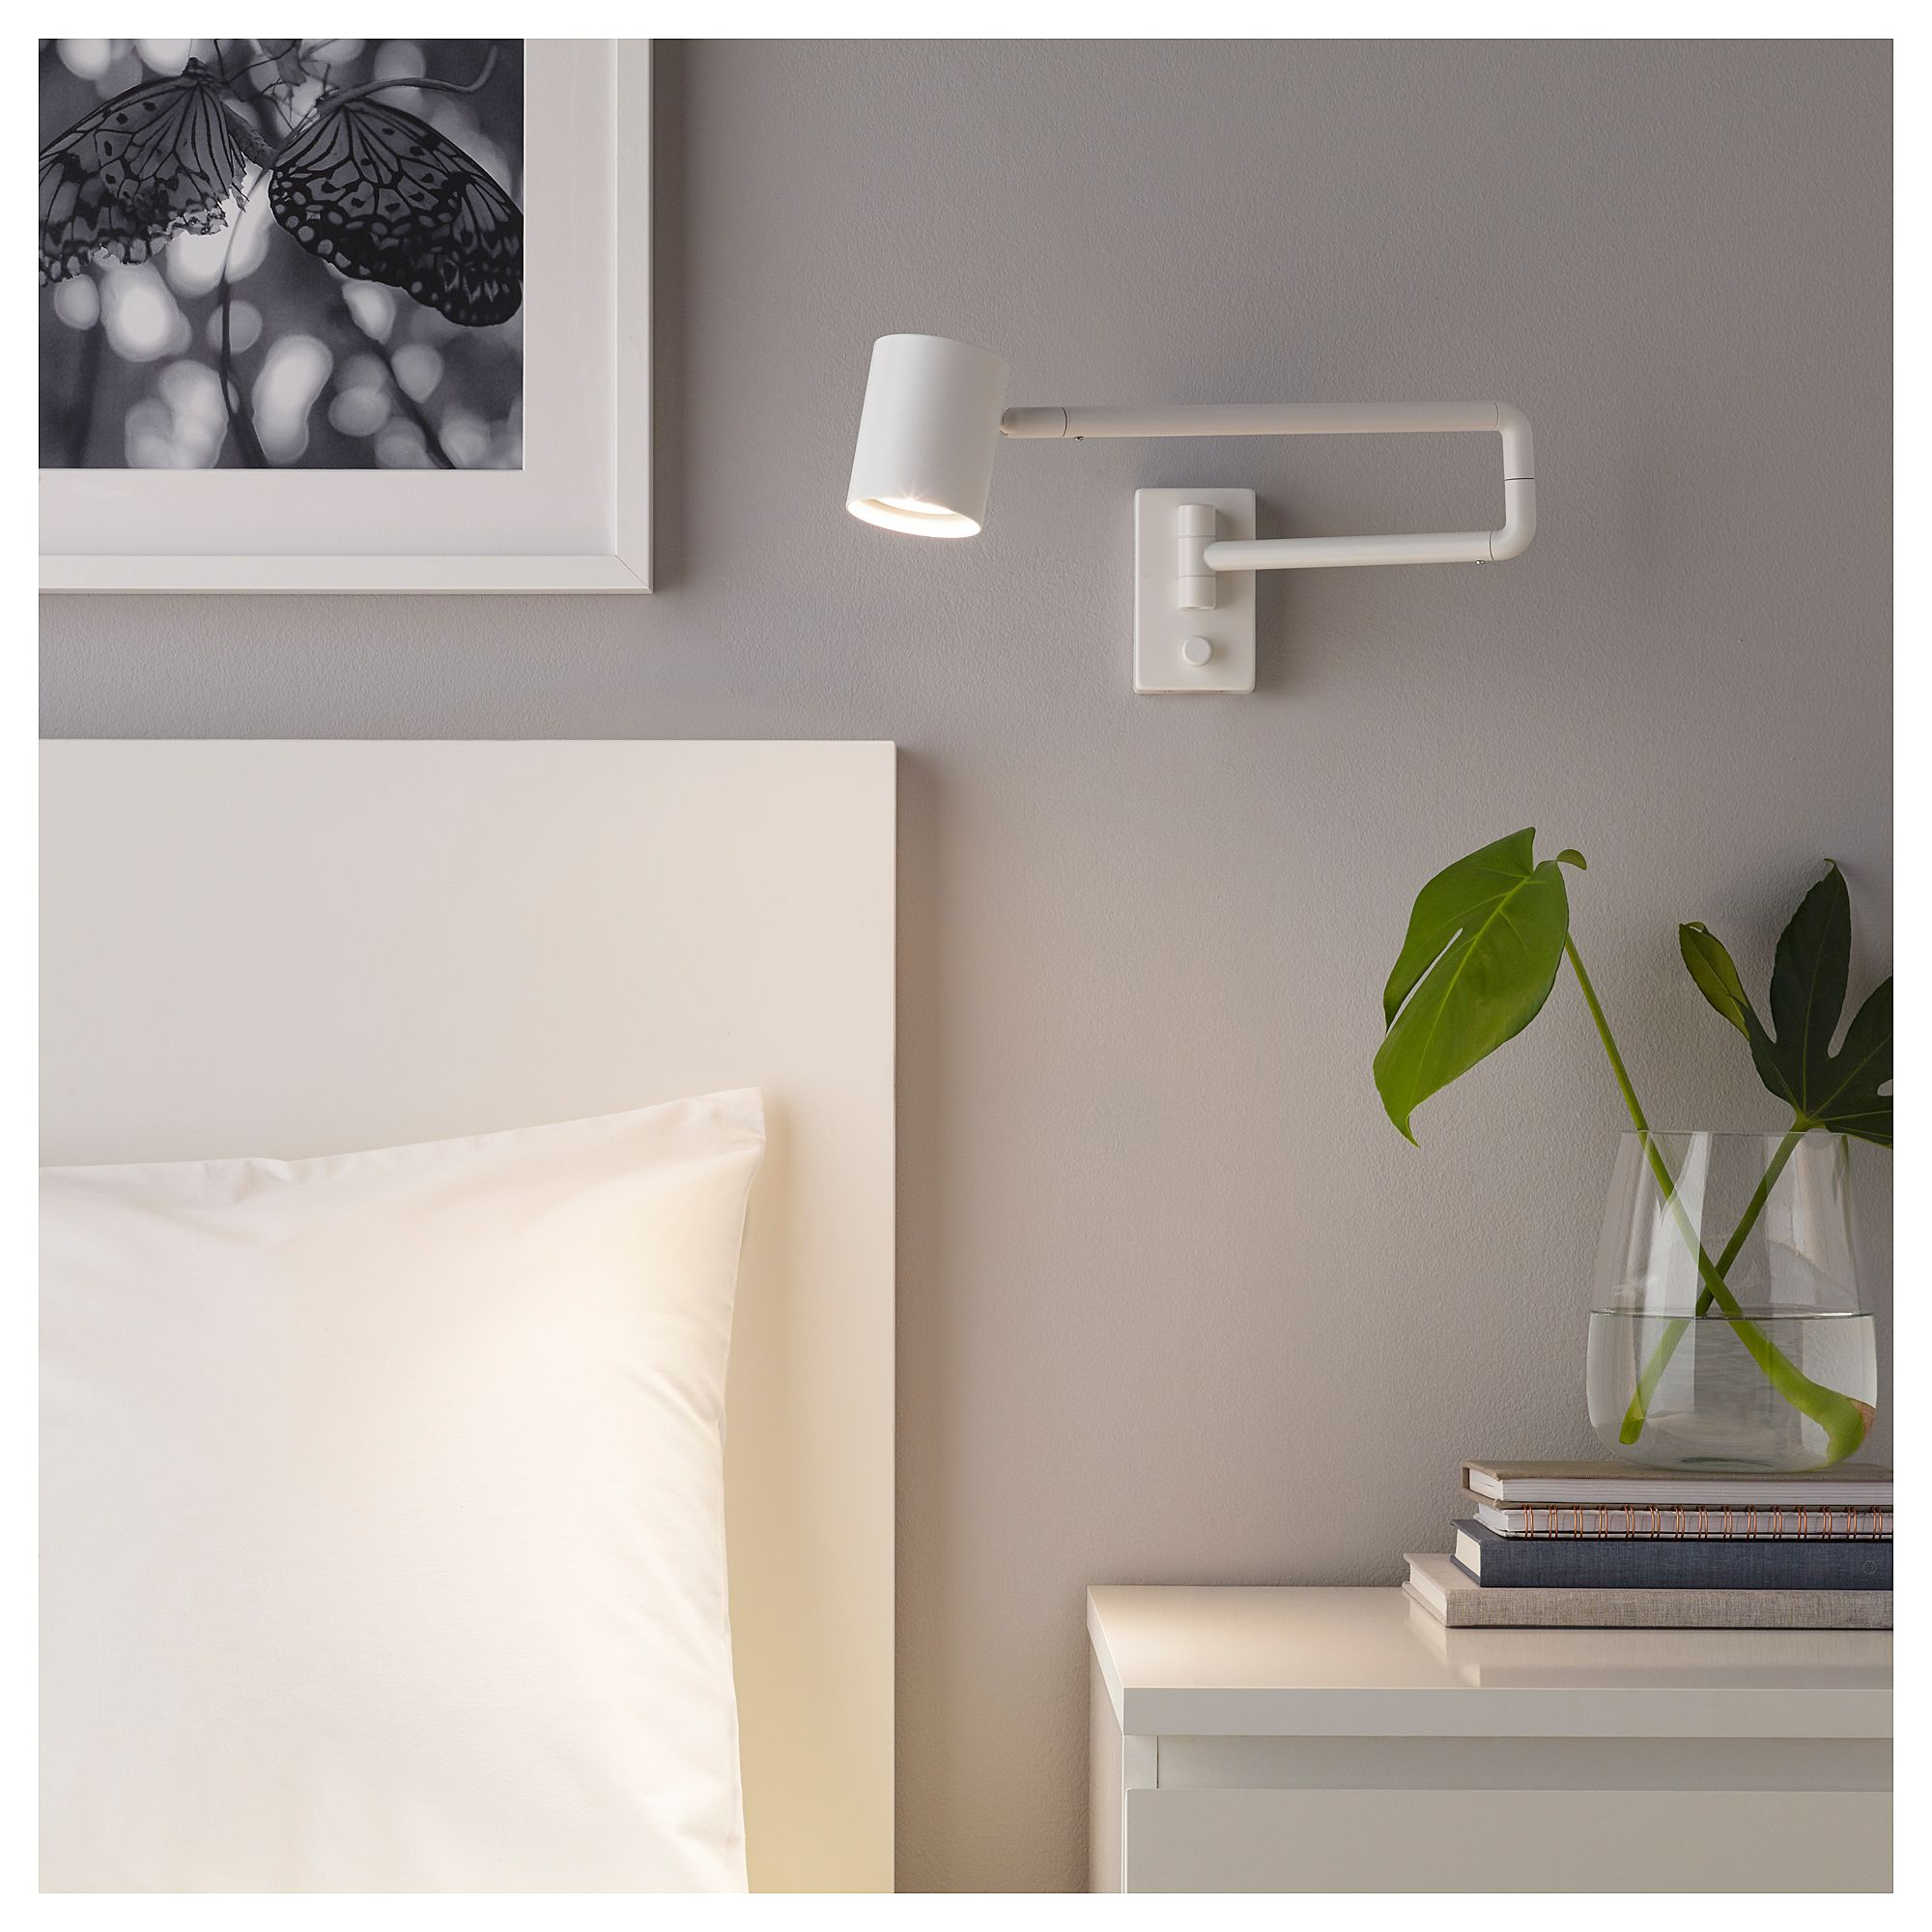 Nymane Wall Lamp With Swing Arm Led Bulb White Ikea Reading Lamp Bedroom Reading Lamp Bedroom Reading Lights